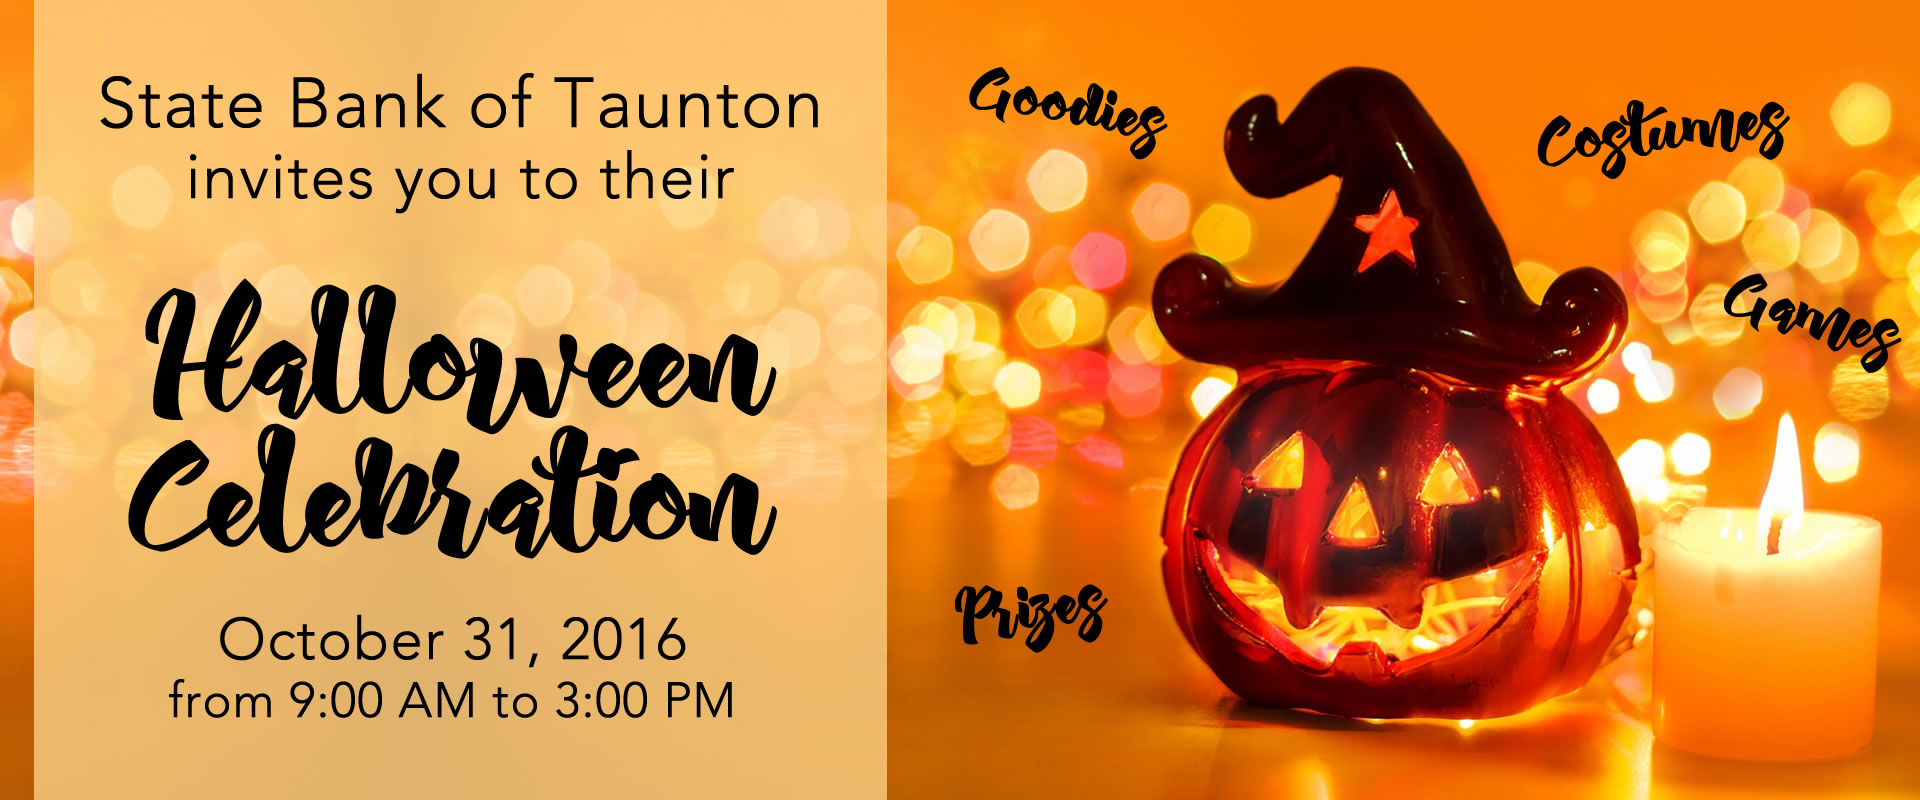 State Bank of Taunton invites to their Halloween Celebration on October 31, 2016